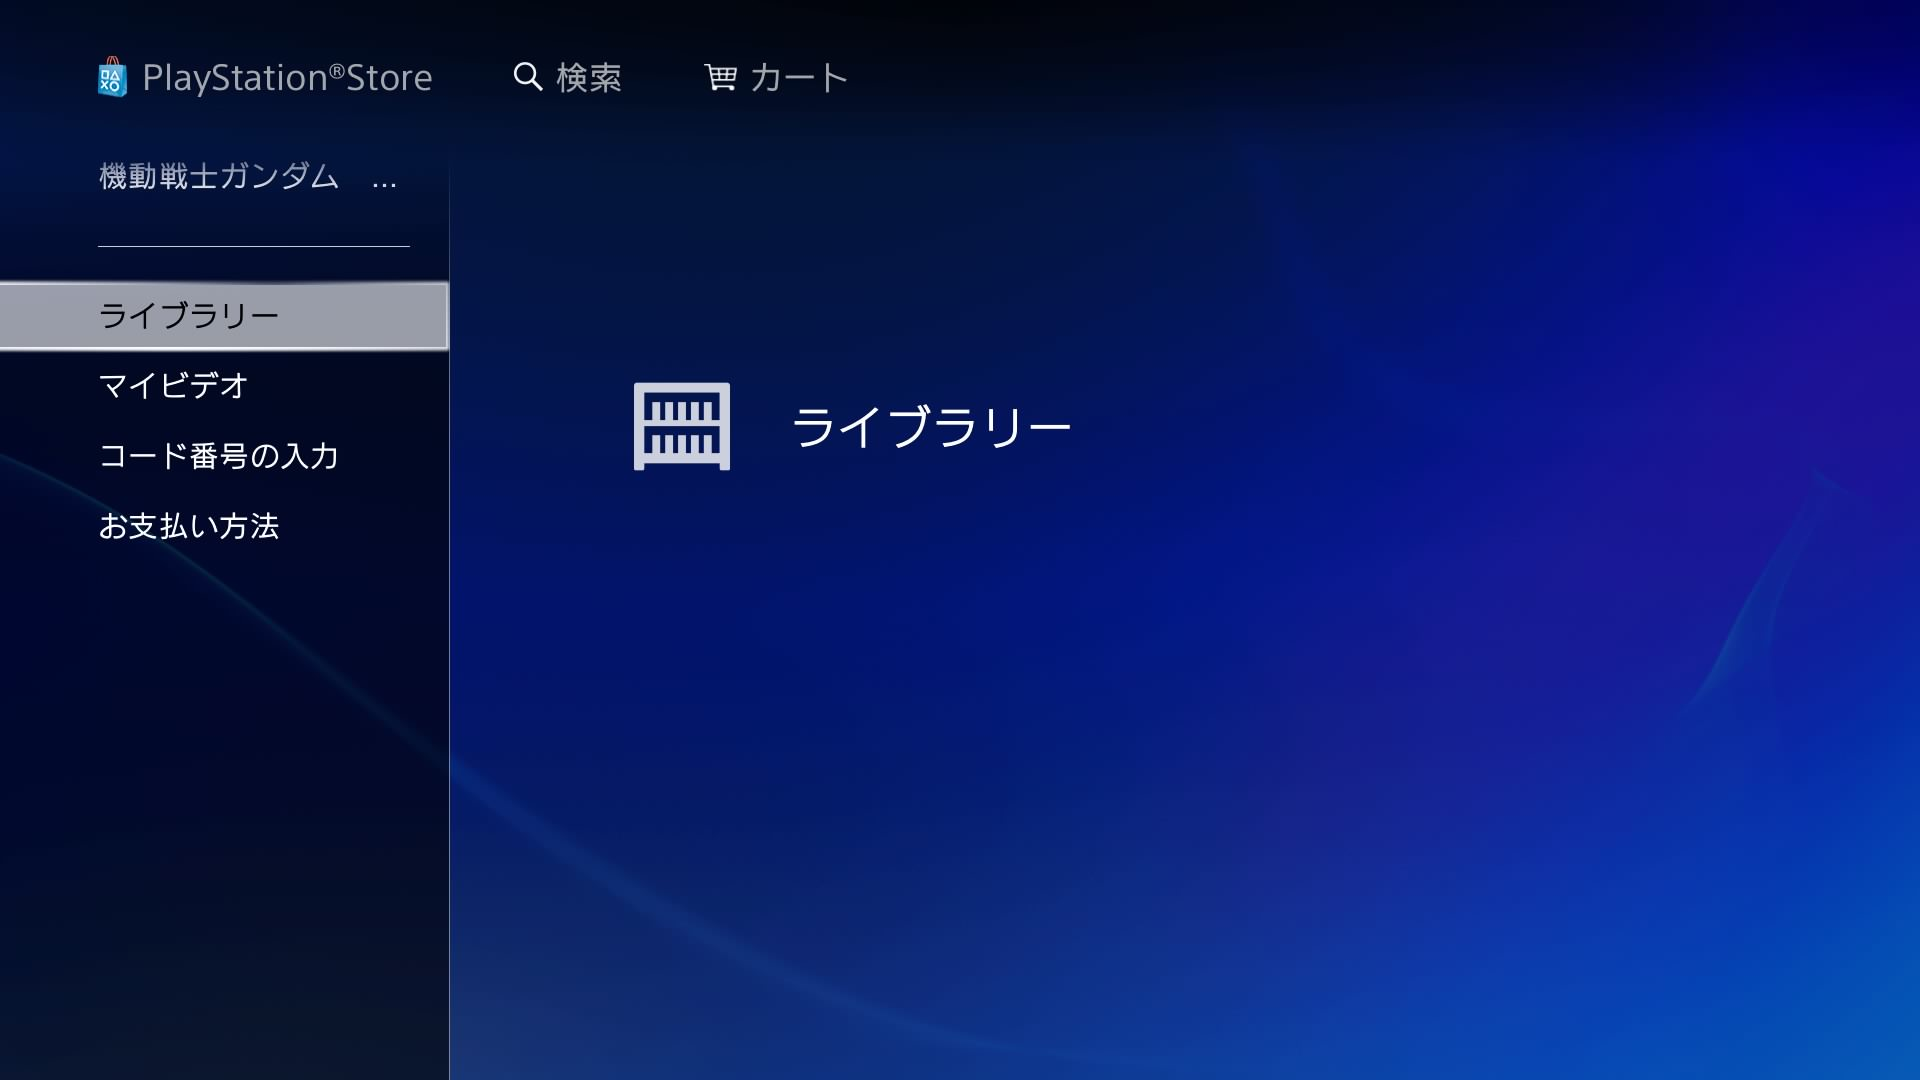 How to download product code contents for playstation 4 6